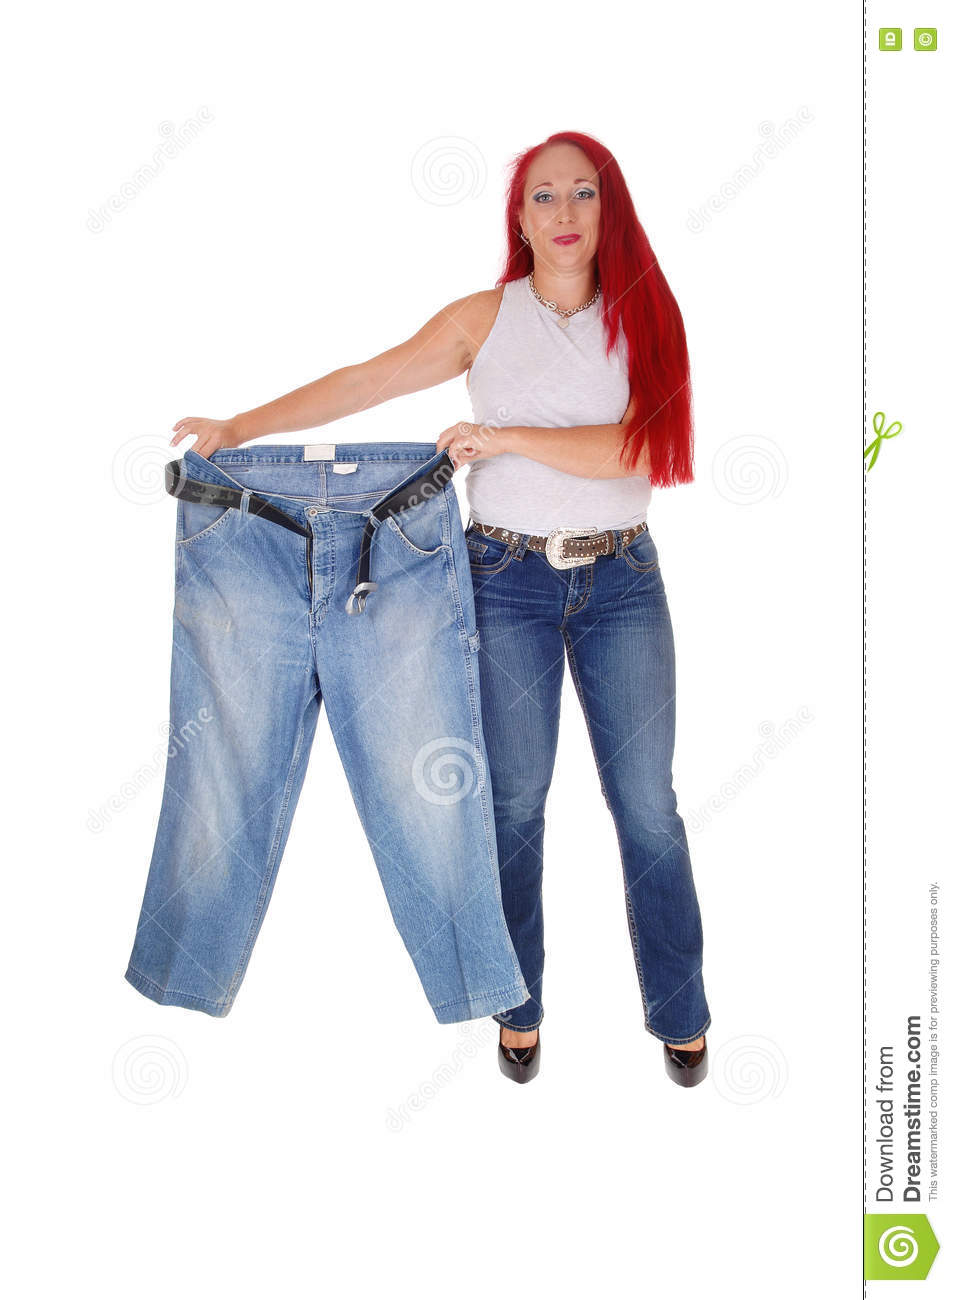 what is hair loss jeans